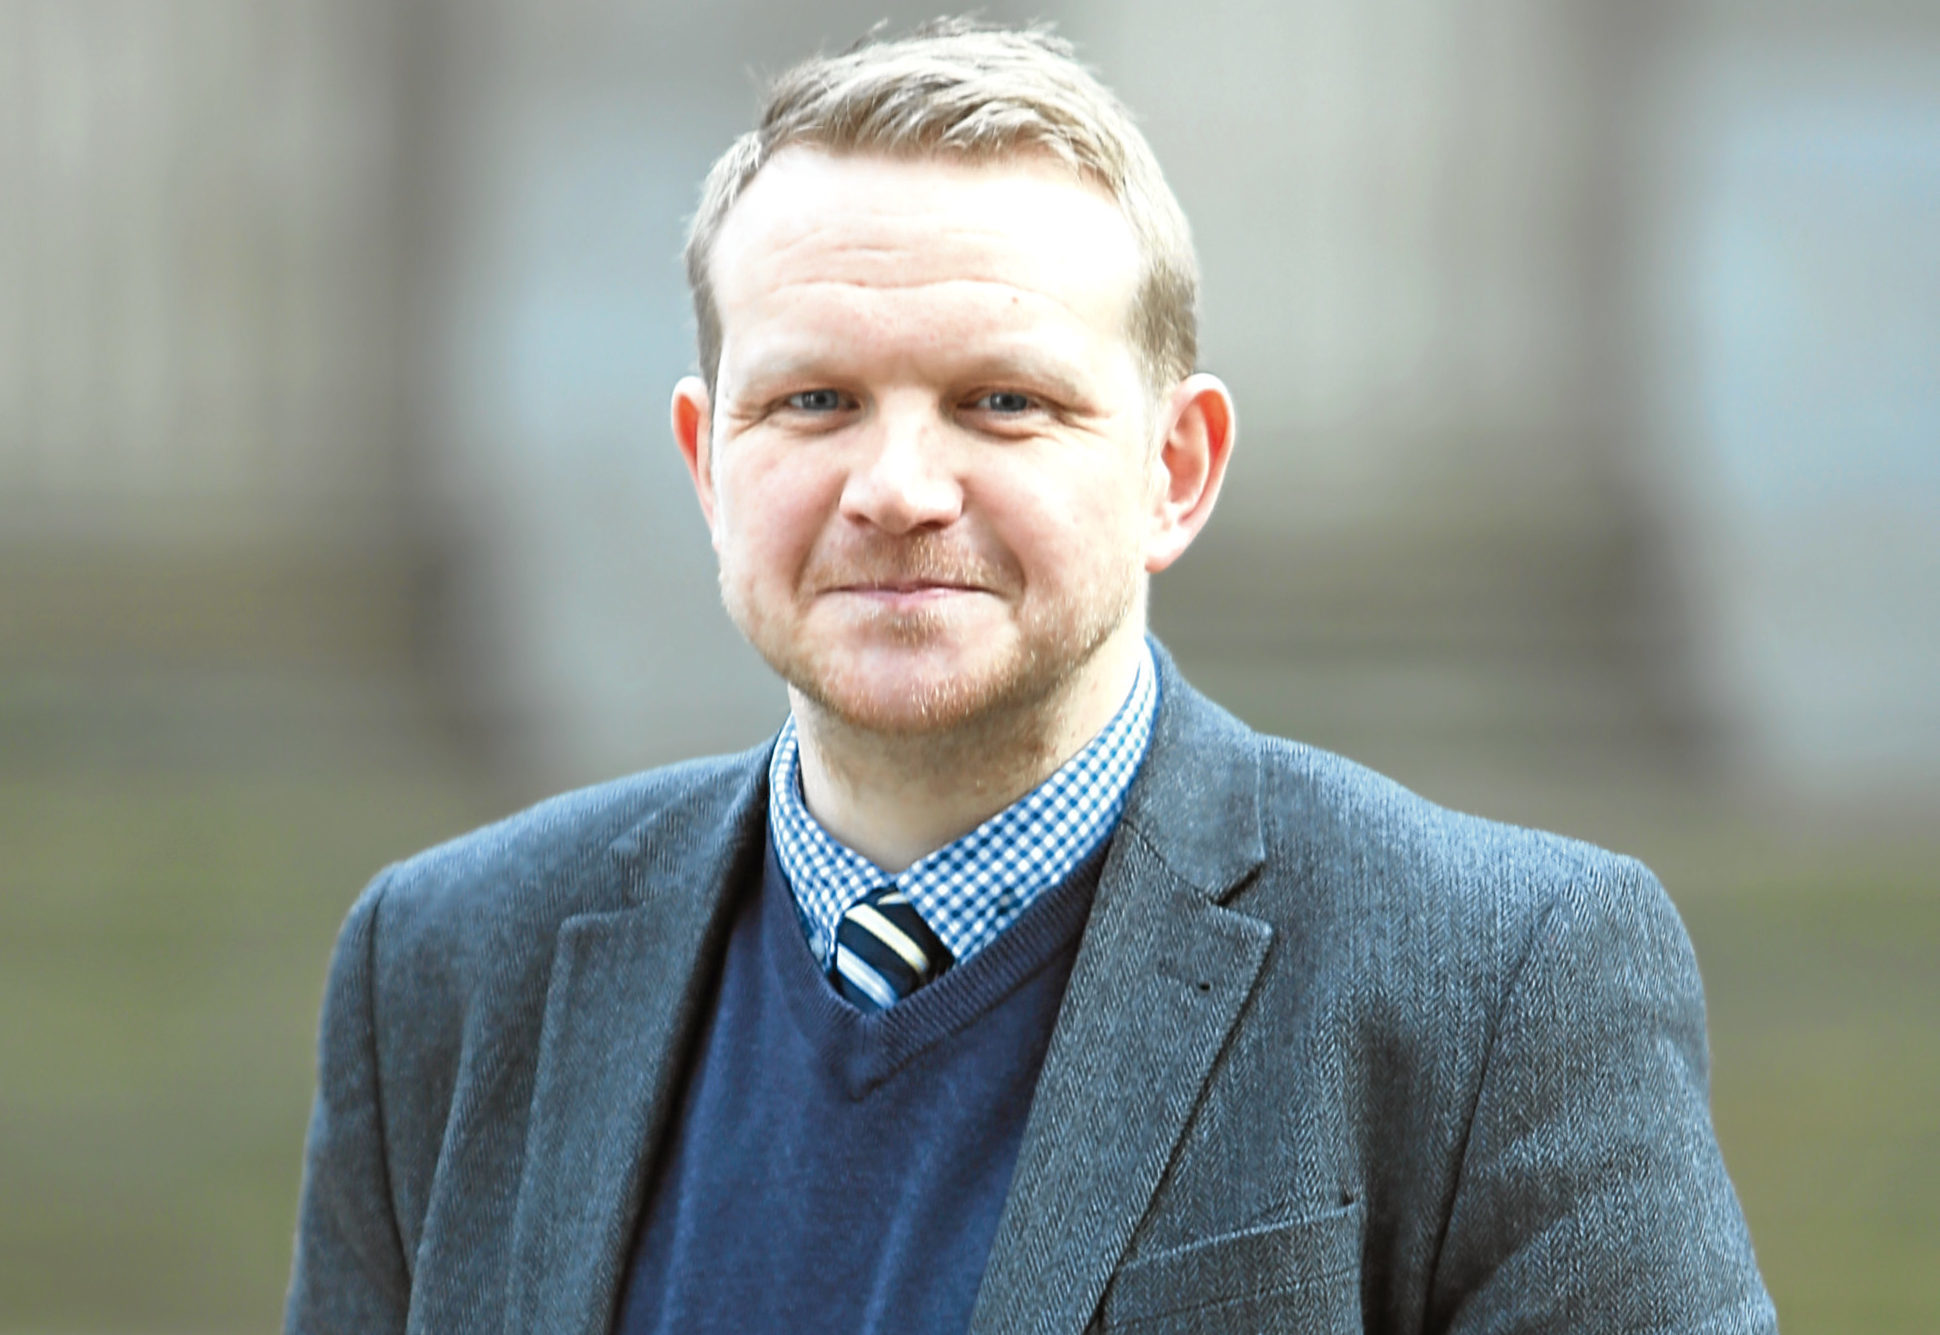 Dundee City Council community safety and public protection convener Councillor Alan Ross